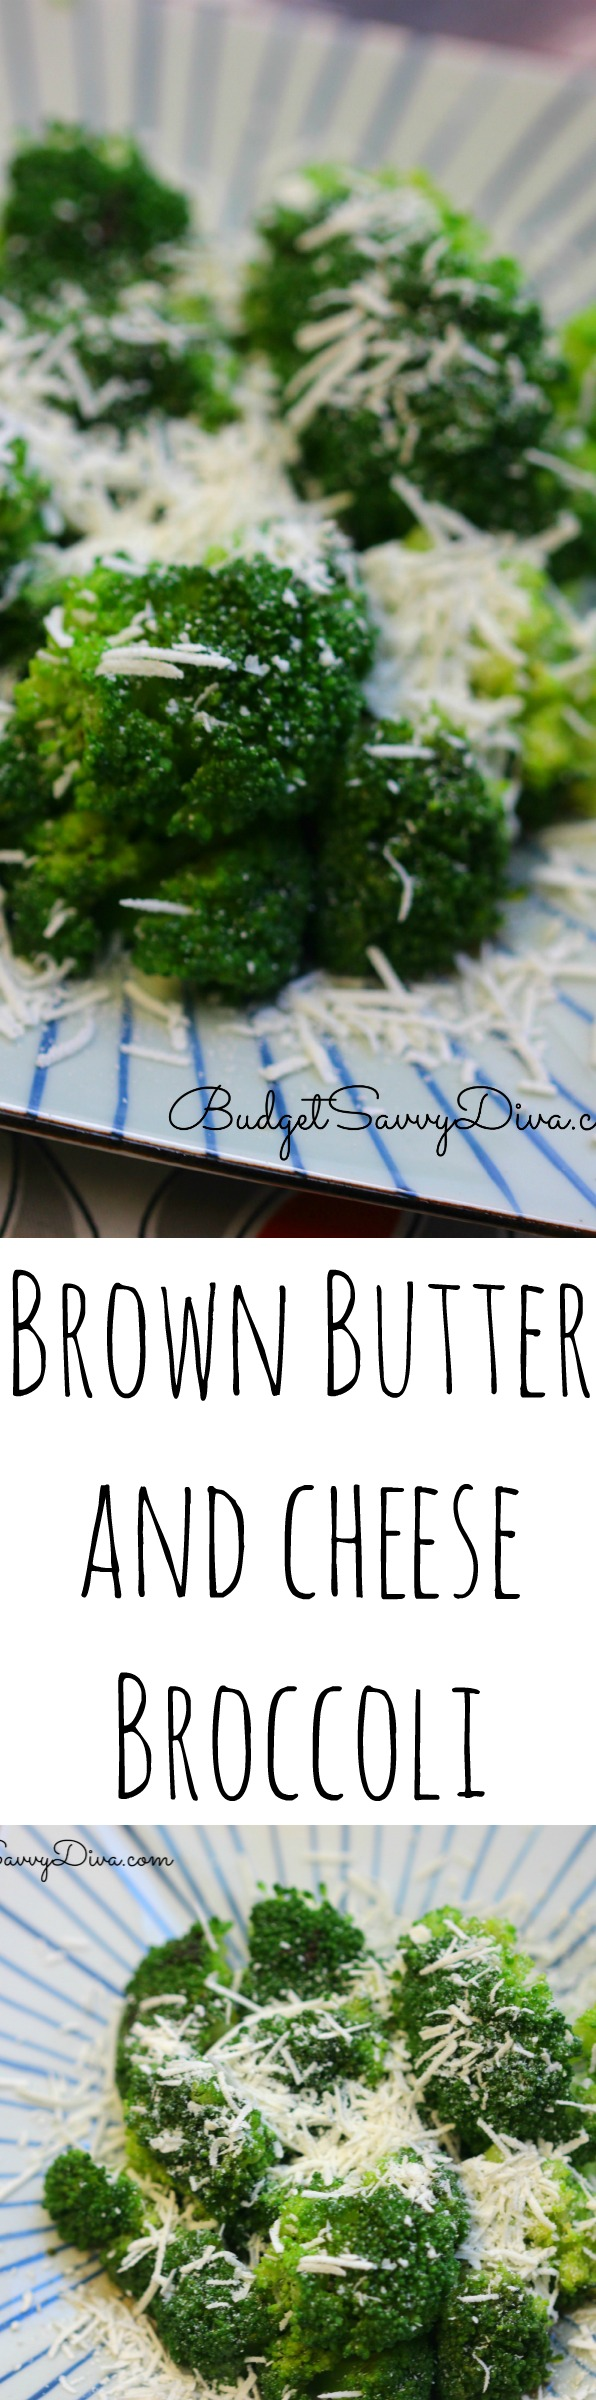 brown butter broccoli FINAL